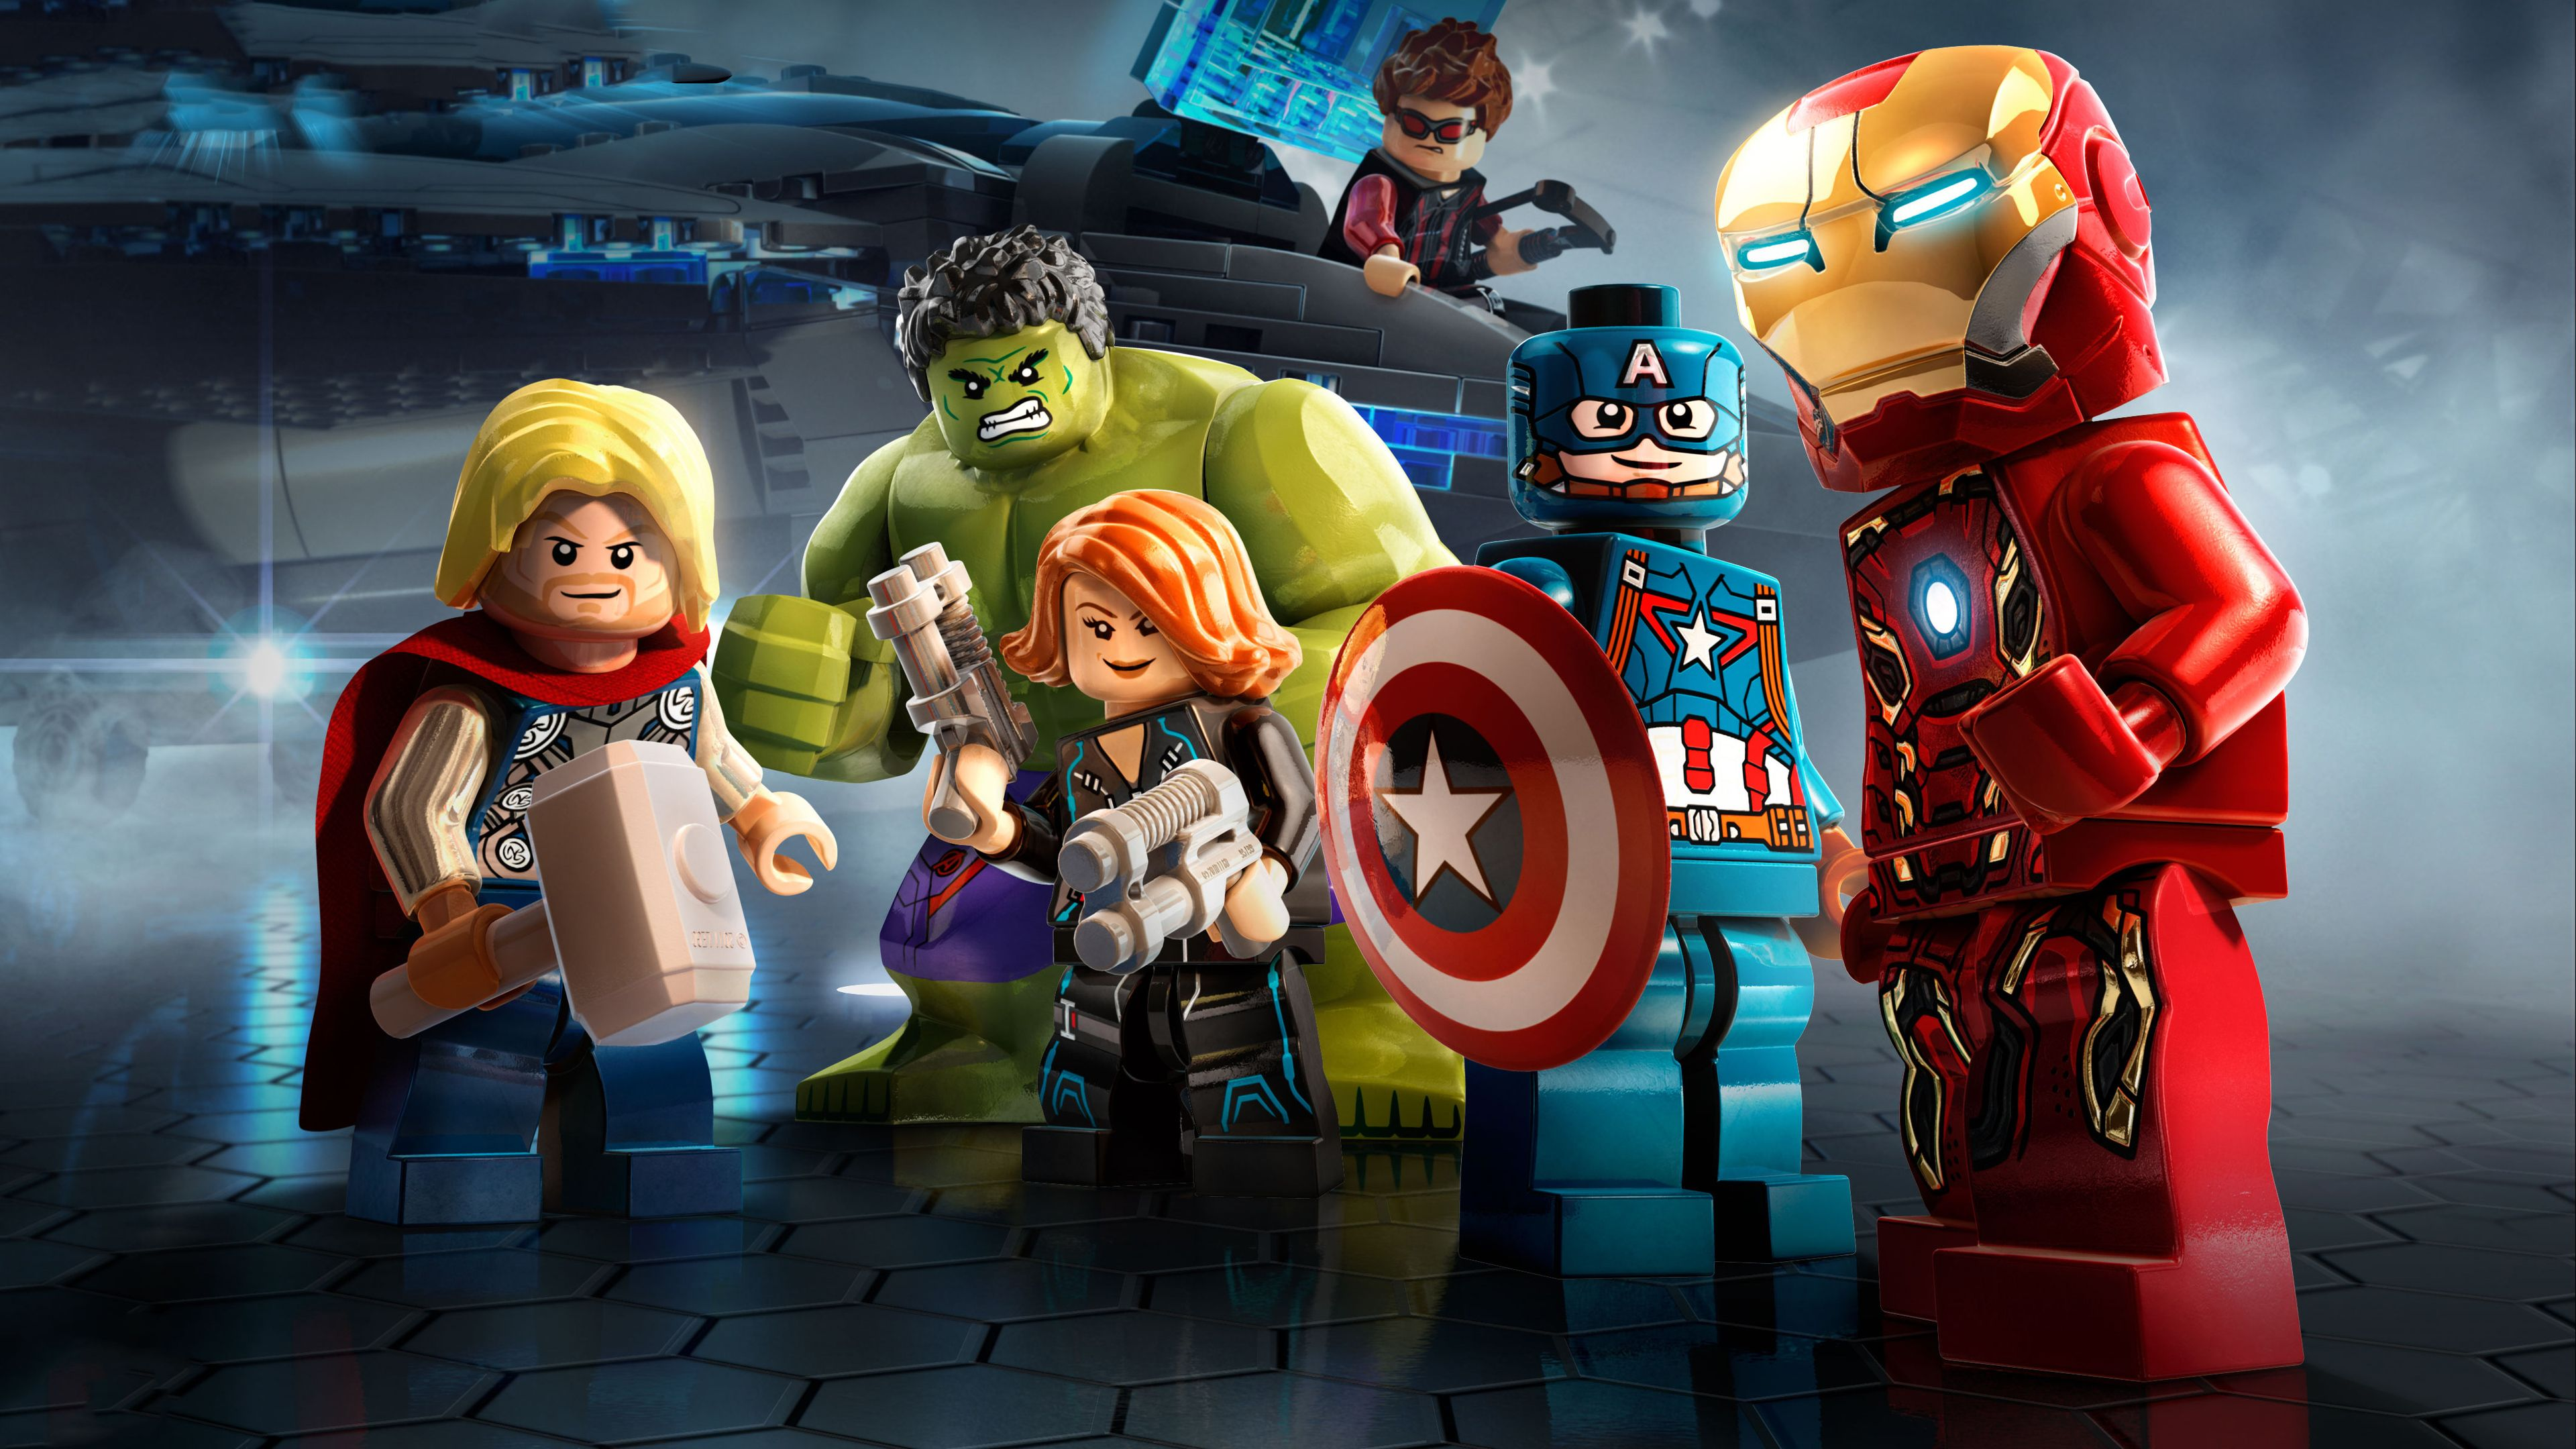 Marvel Avengers Lego 4k Superheroes Wallpapers Lego Wallpapers Hd